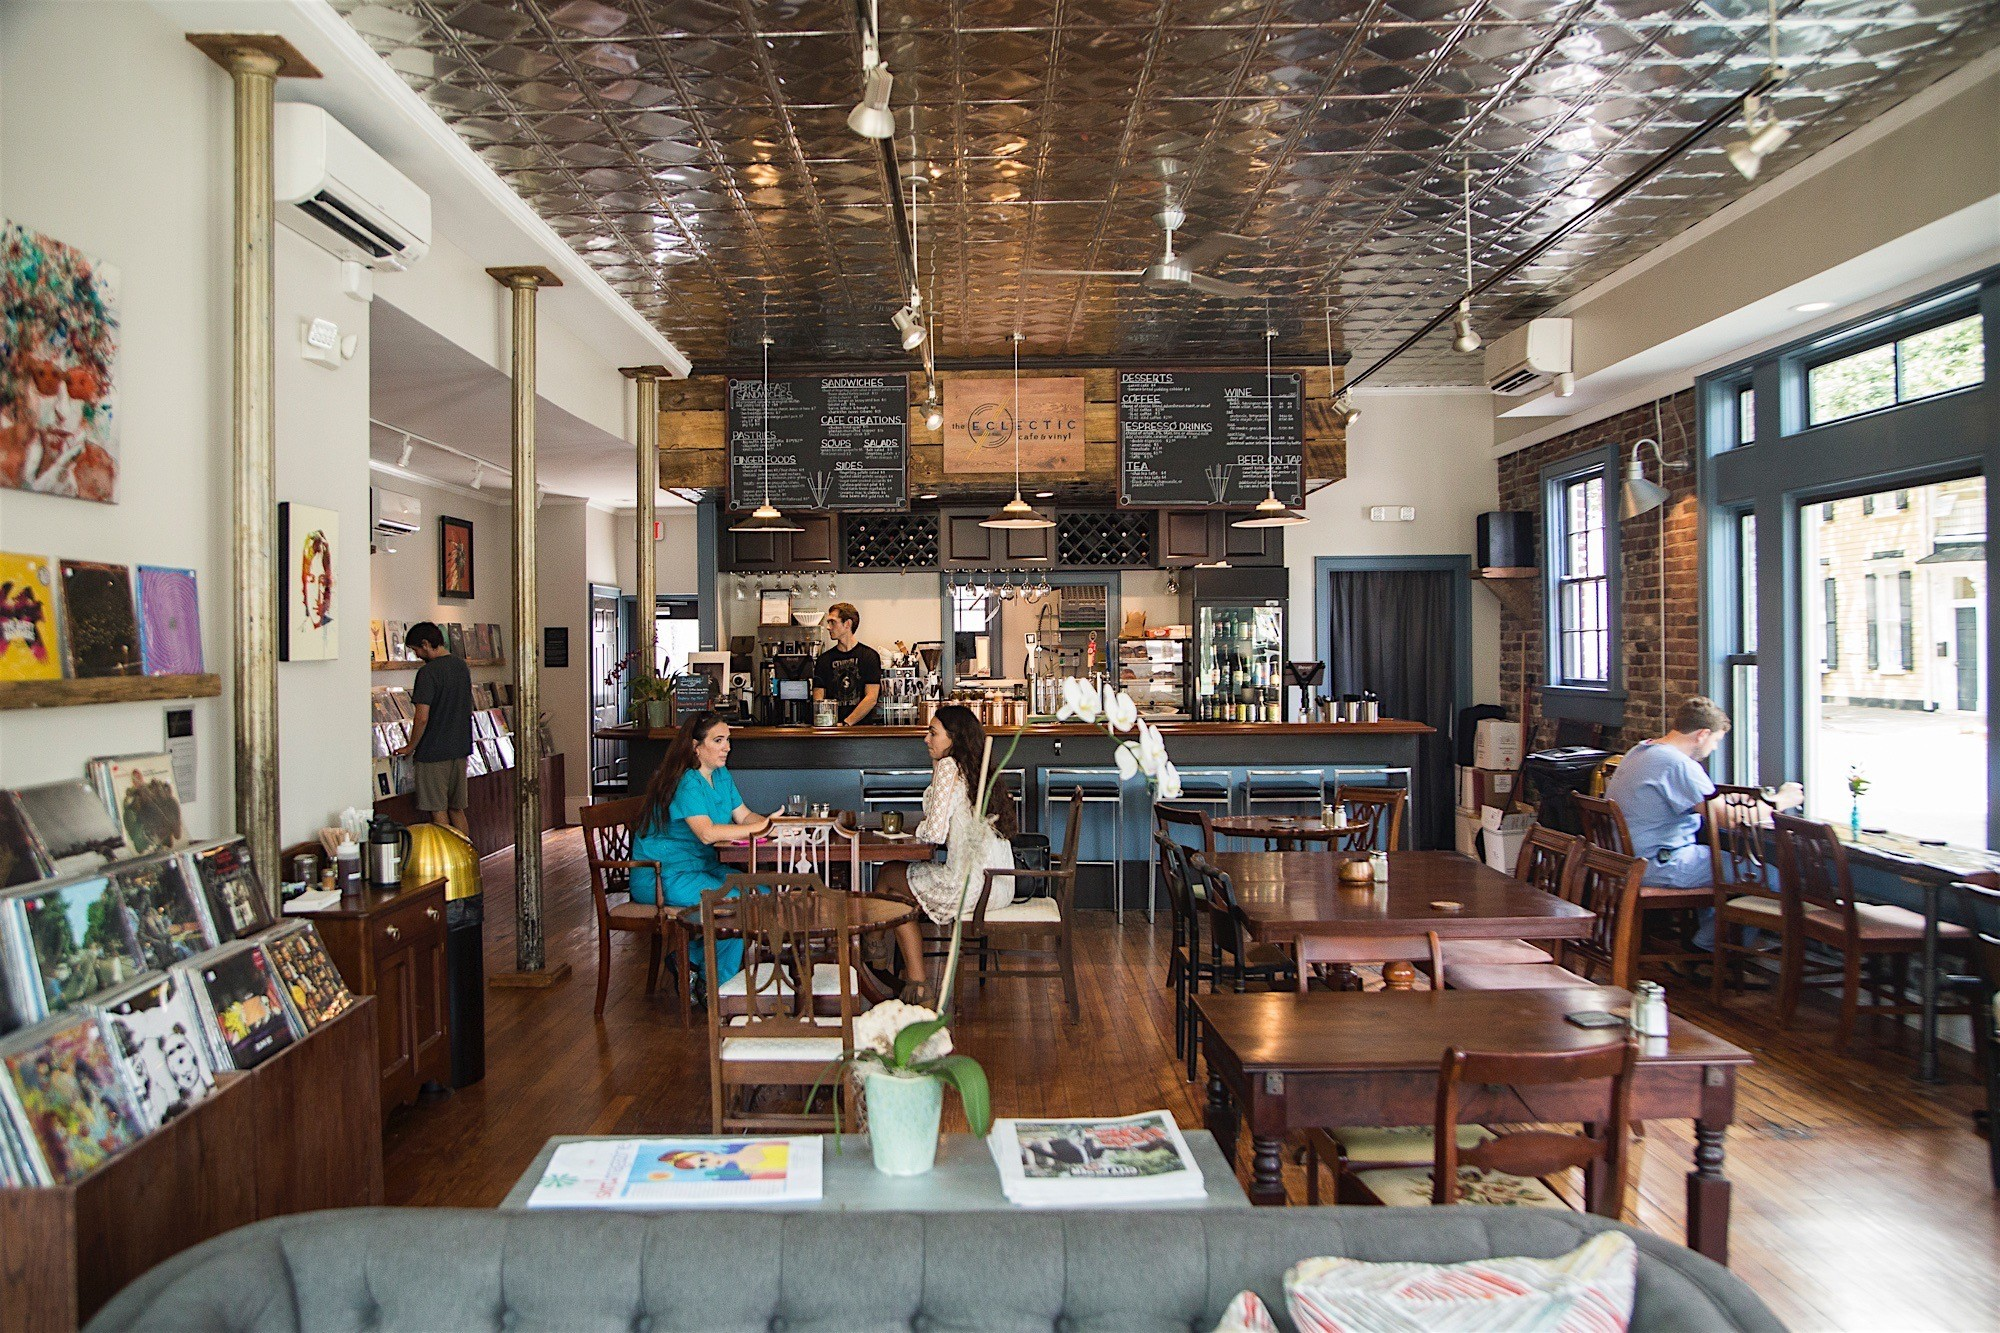 click to enlarge Eclectic Cafe & Vinyl often served as a performance space  for musicians, poets, and